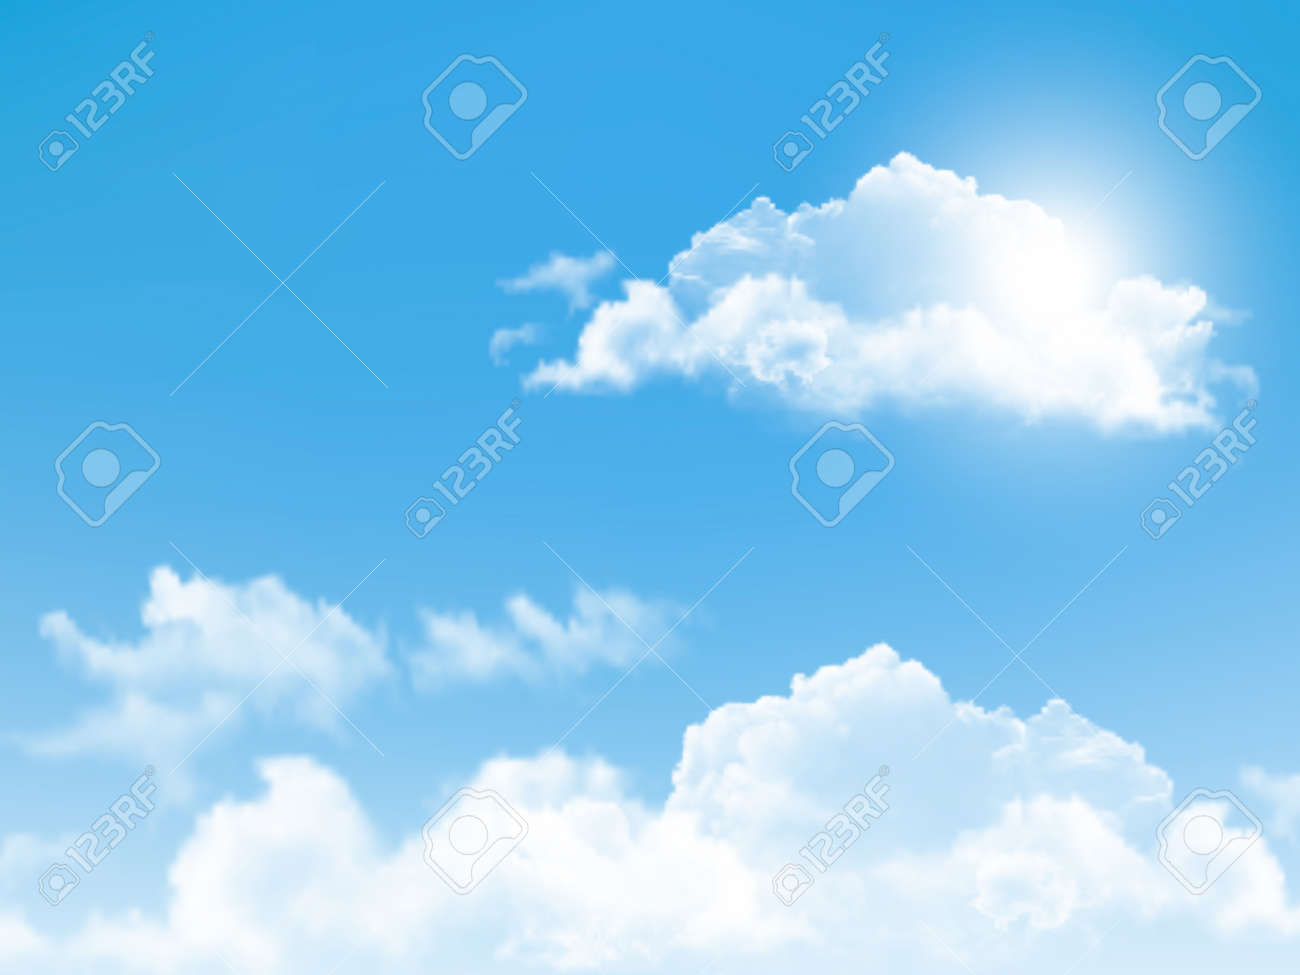 Blue sky with clouds. Vector background. - 25815325